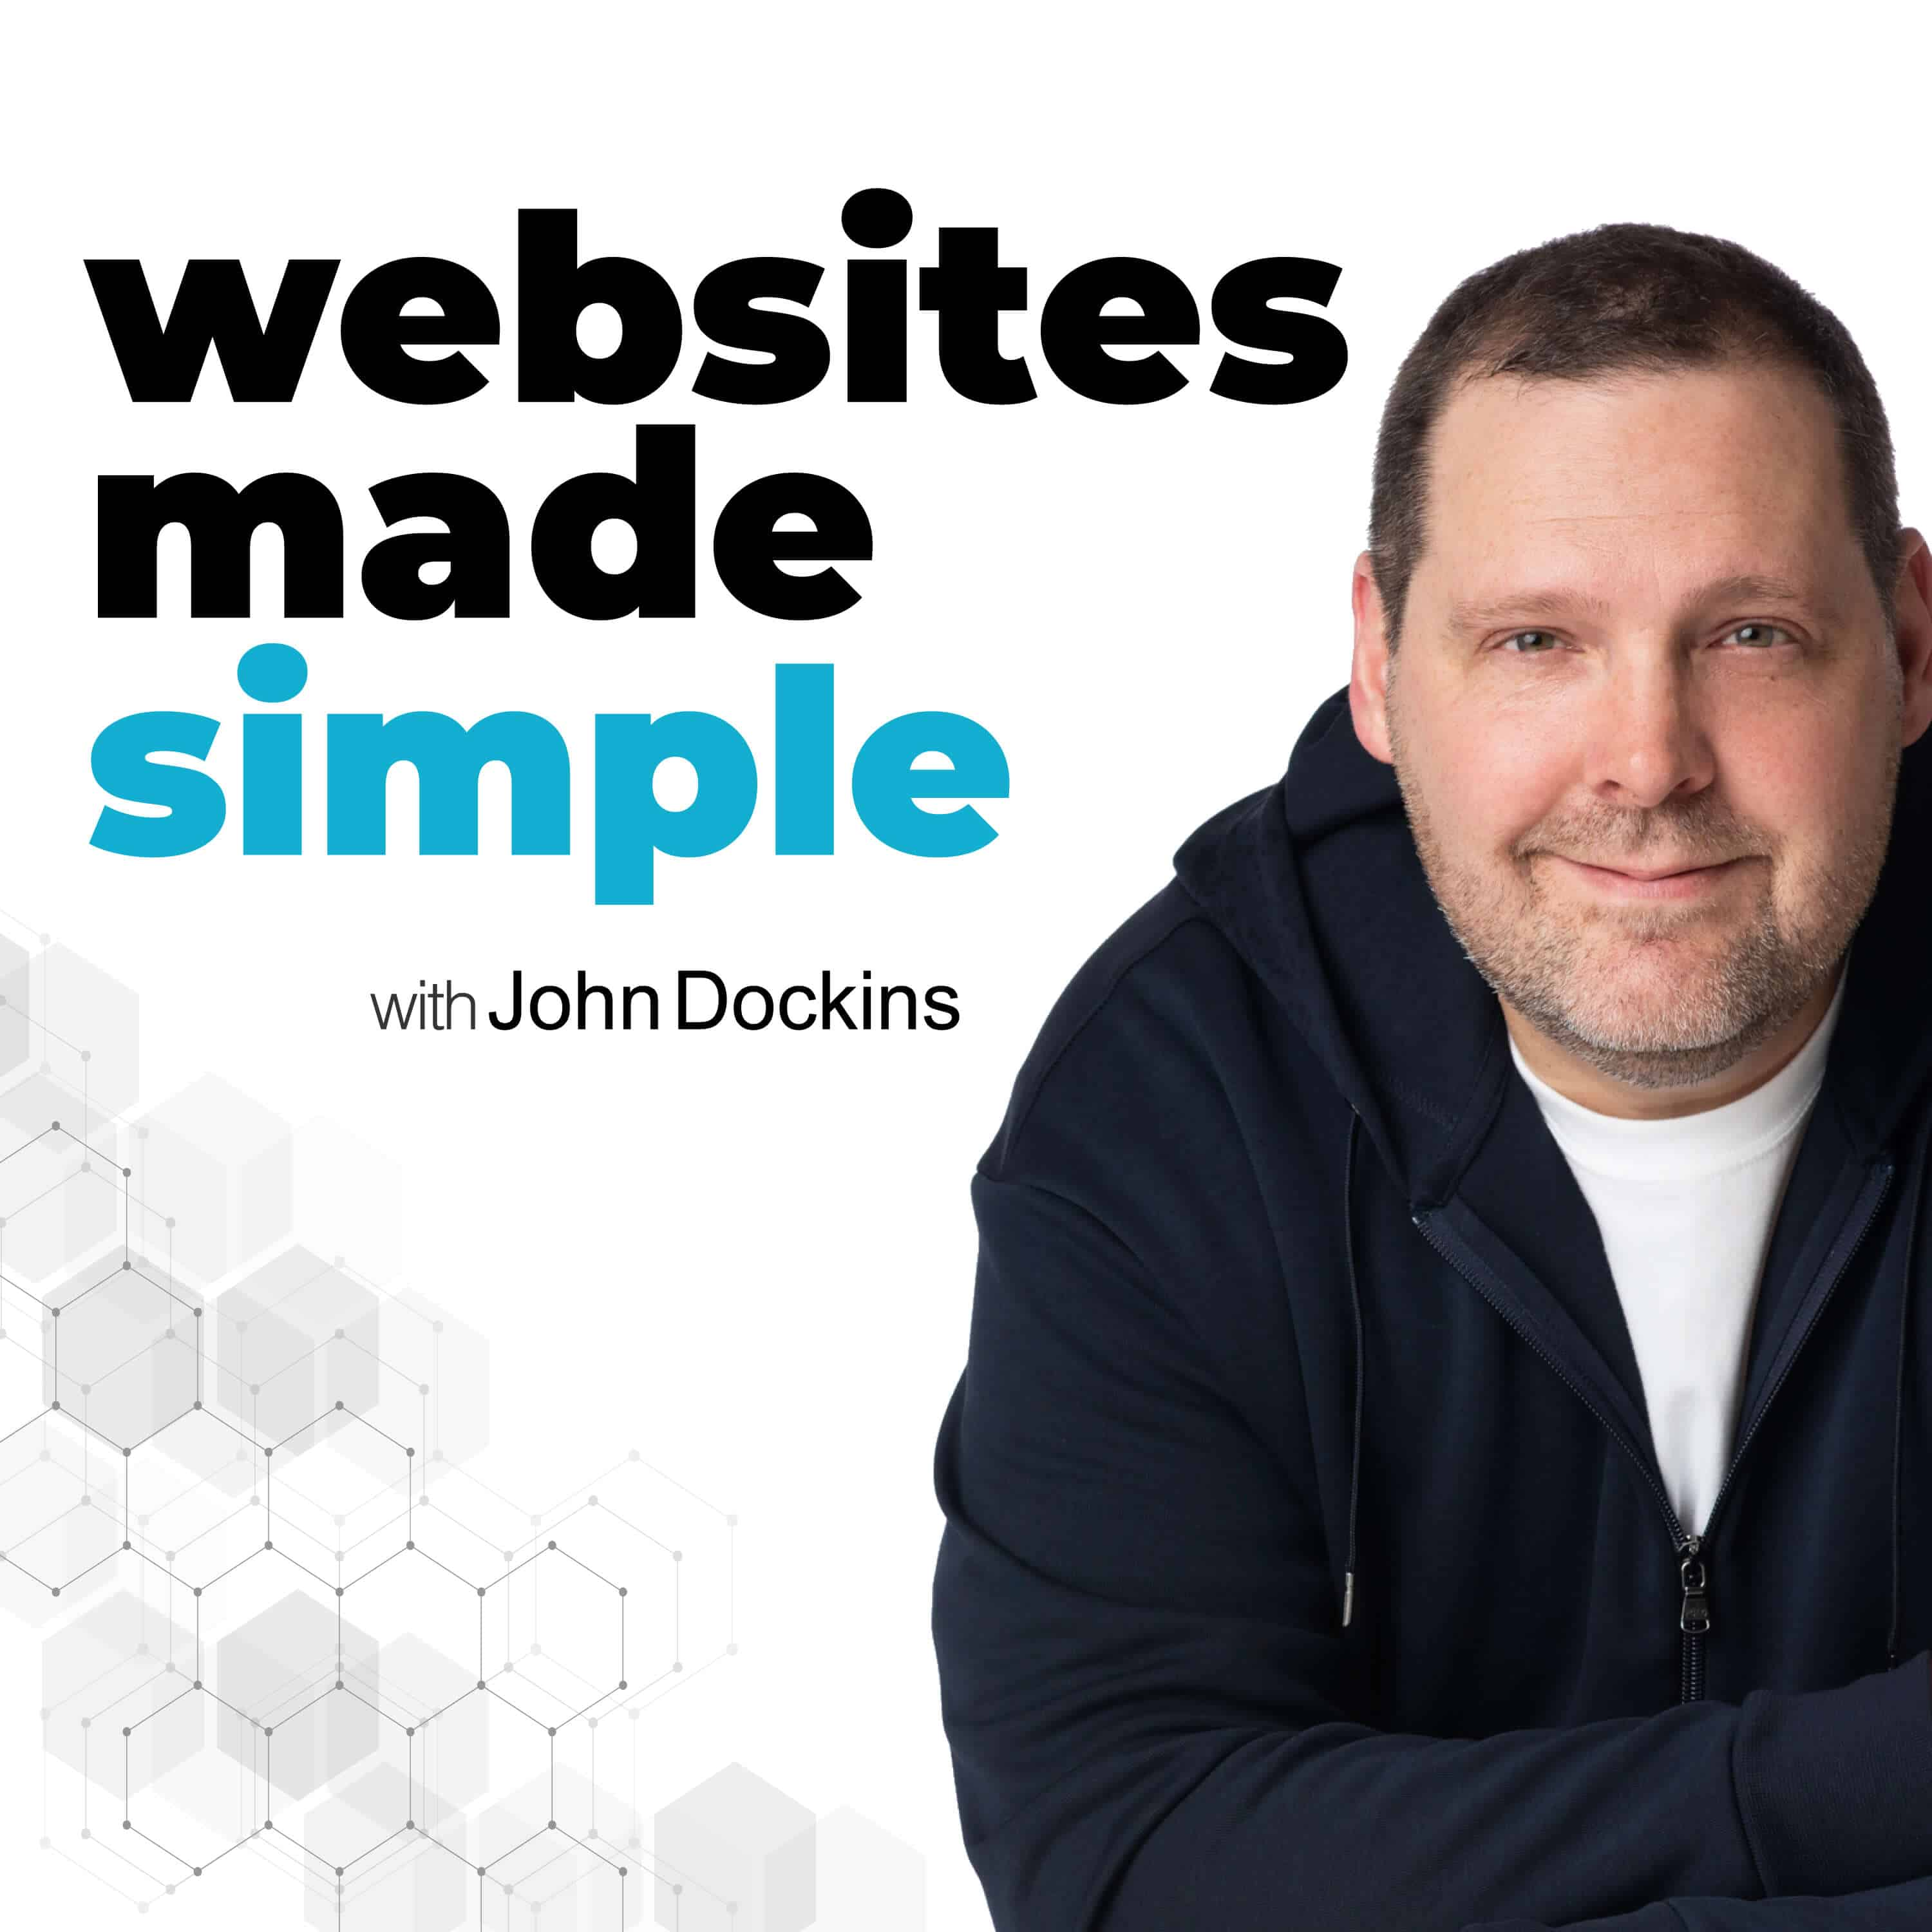 websites made simple podcast